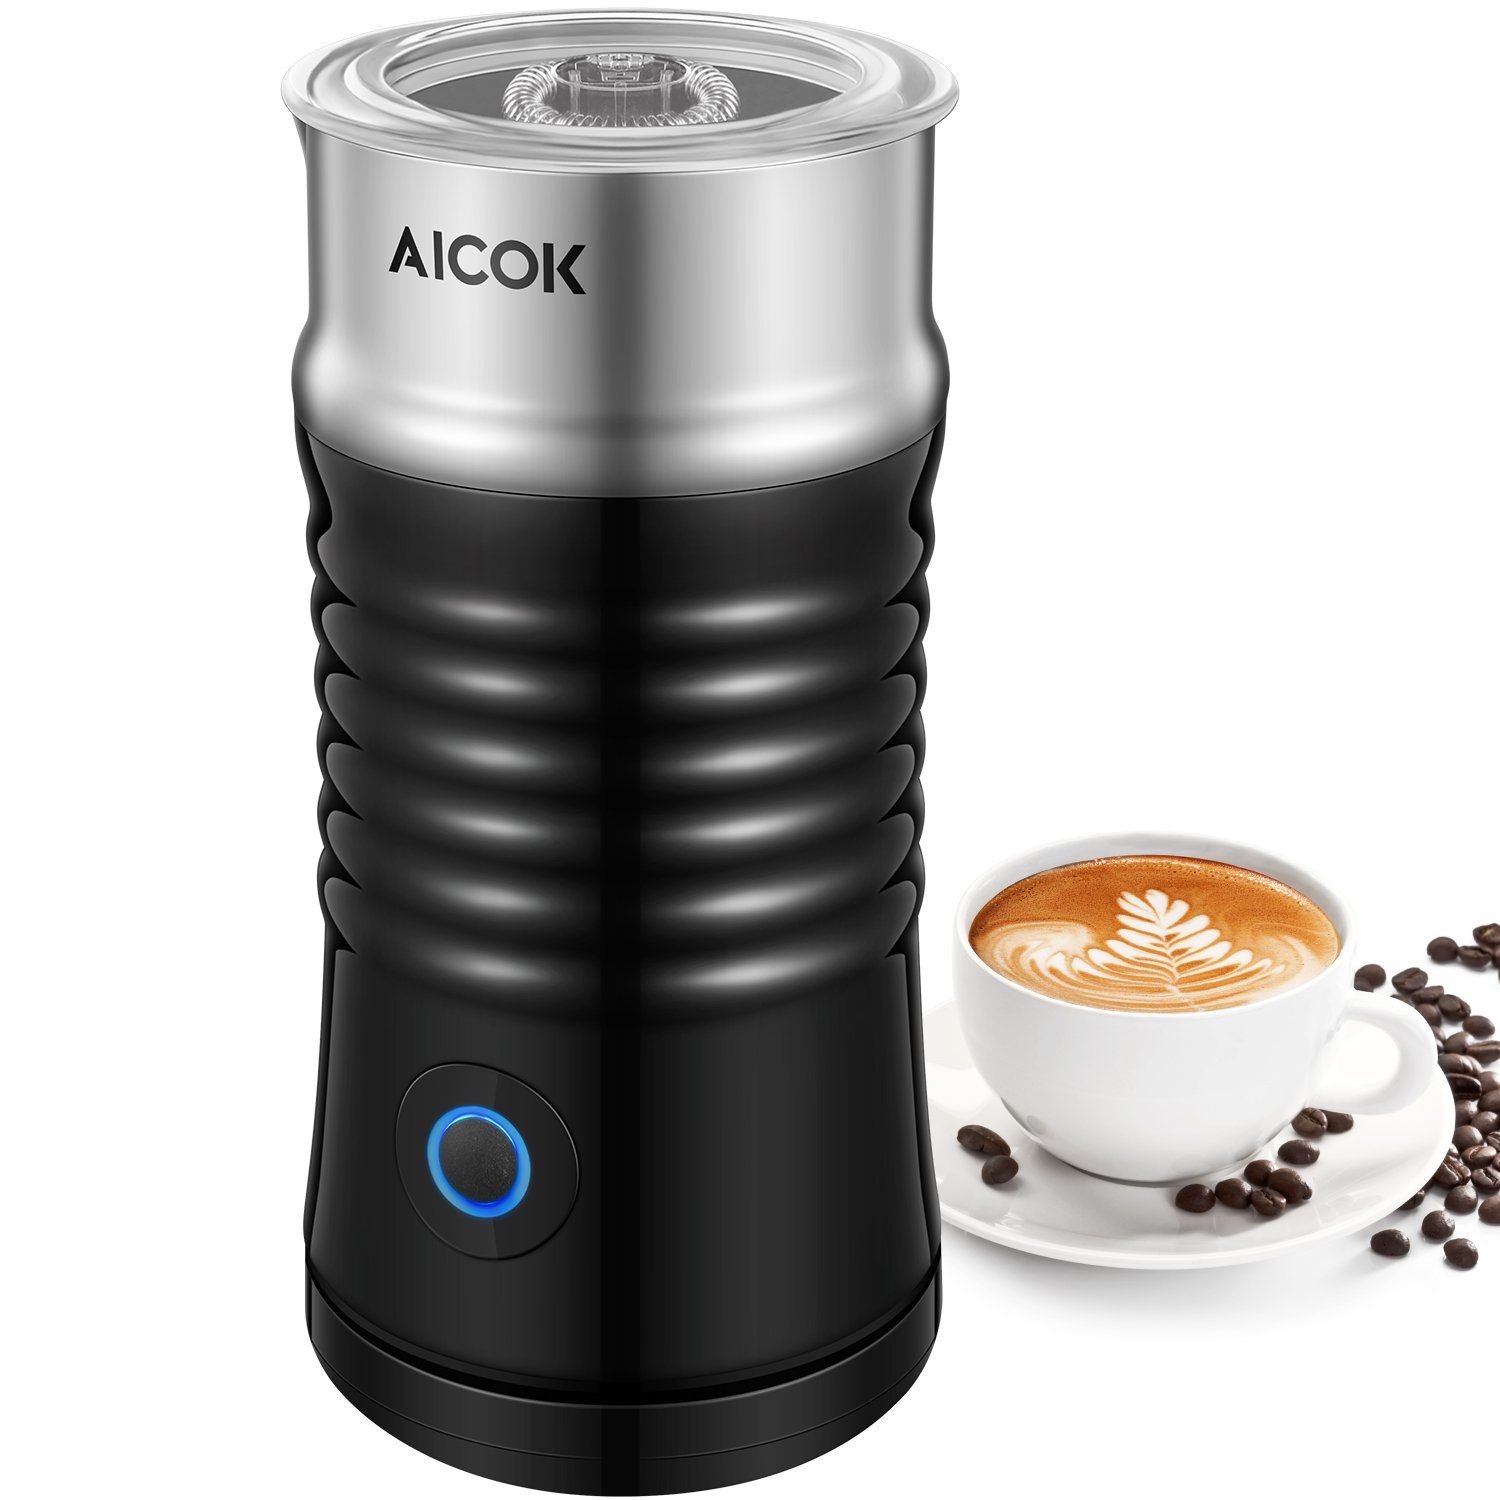 Aicok Milk Frother, Double Wall Electric Milk Steamer with Strix Controller, Silent Operation, Non-Stick Coating, Milk Warmer for Coffee, Latte, Cappuccino, Black